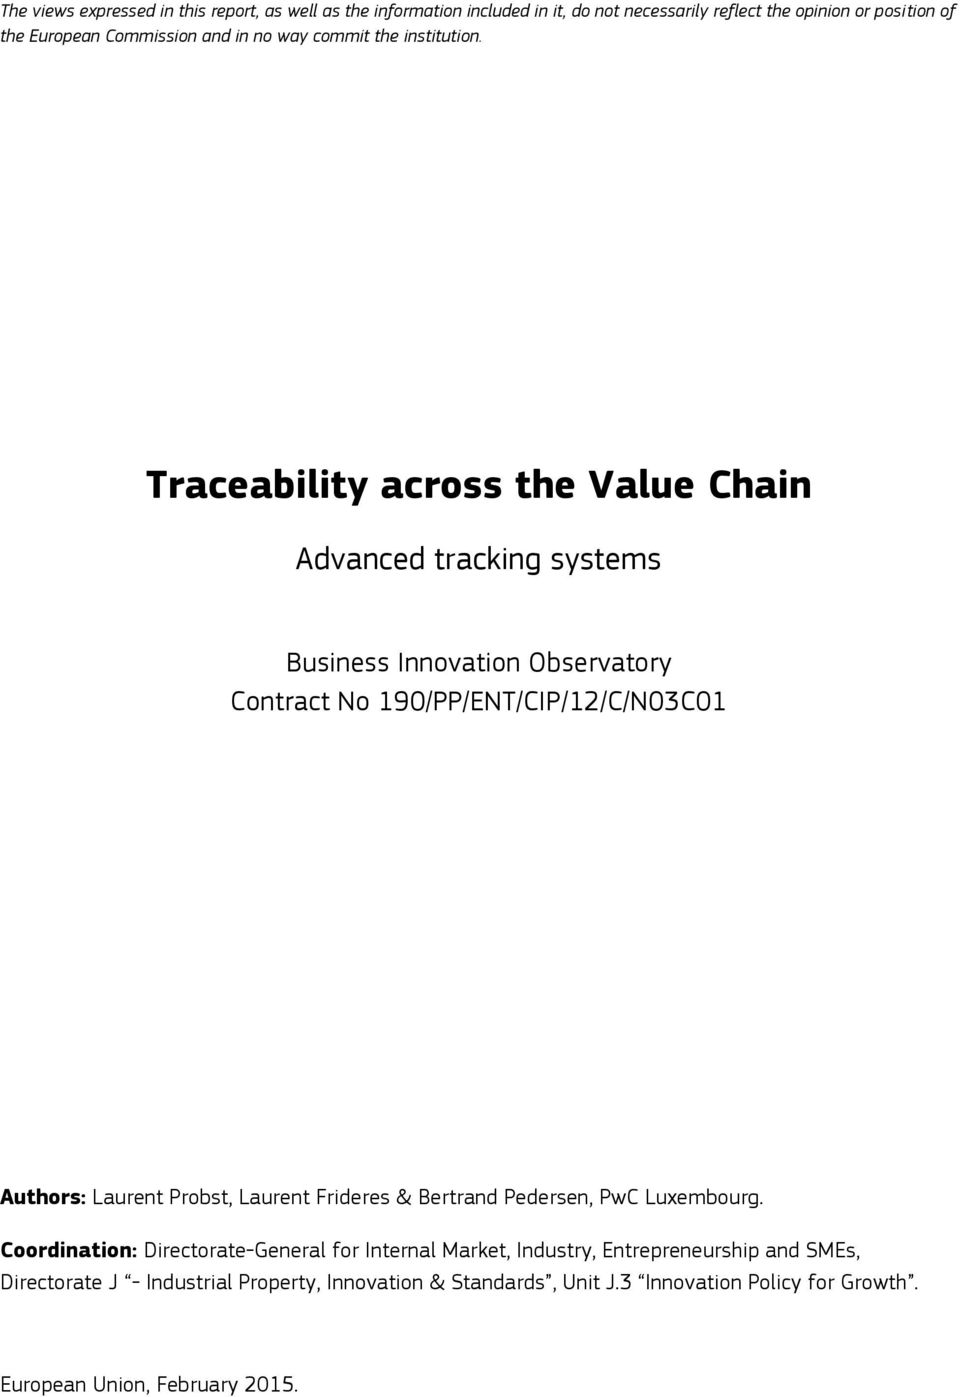 Traceability across the Value Chain Advanced tracking systems Business Innovation Observatory Contract No 190/PP/ENT/CIP/12/C/N03C01 Authors: Laurent Probst,